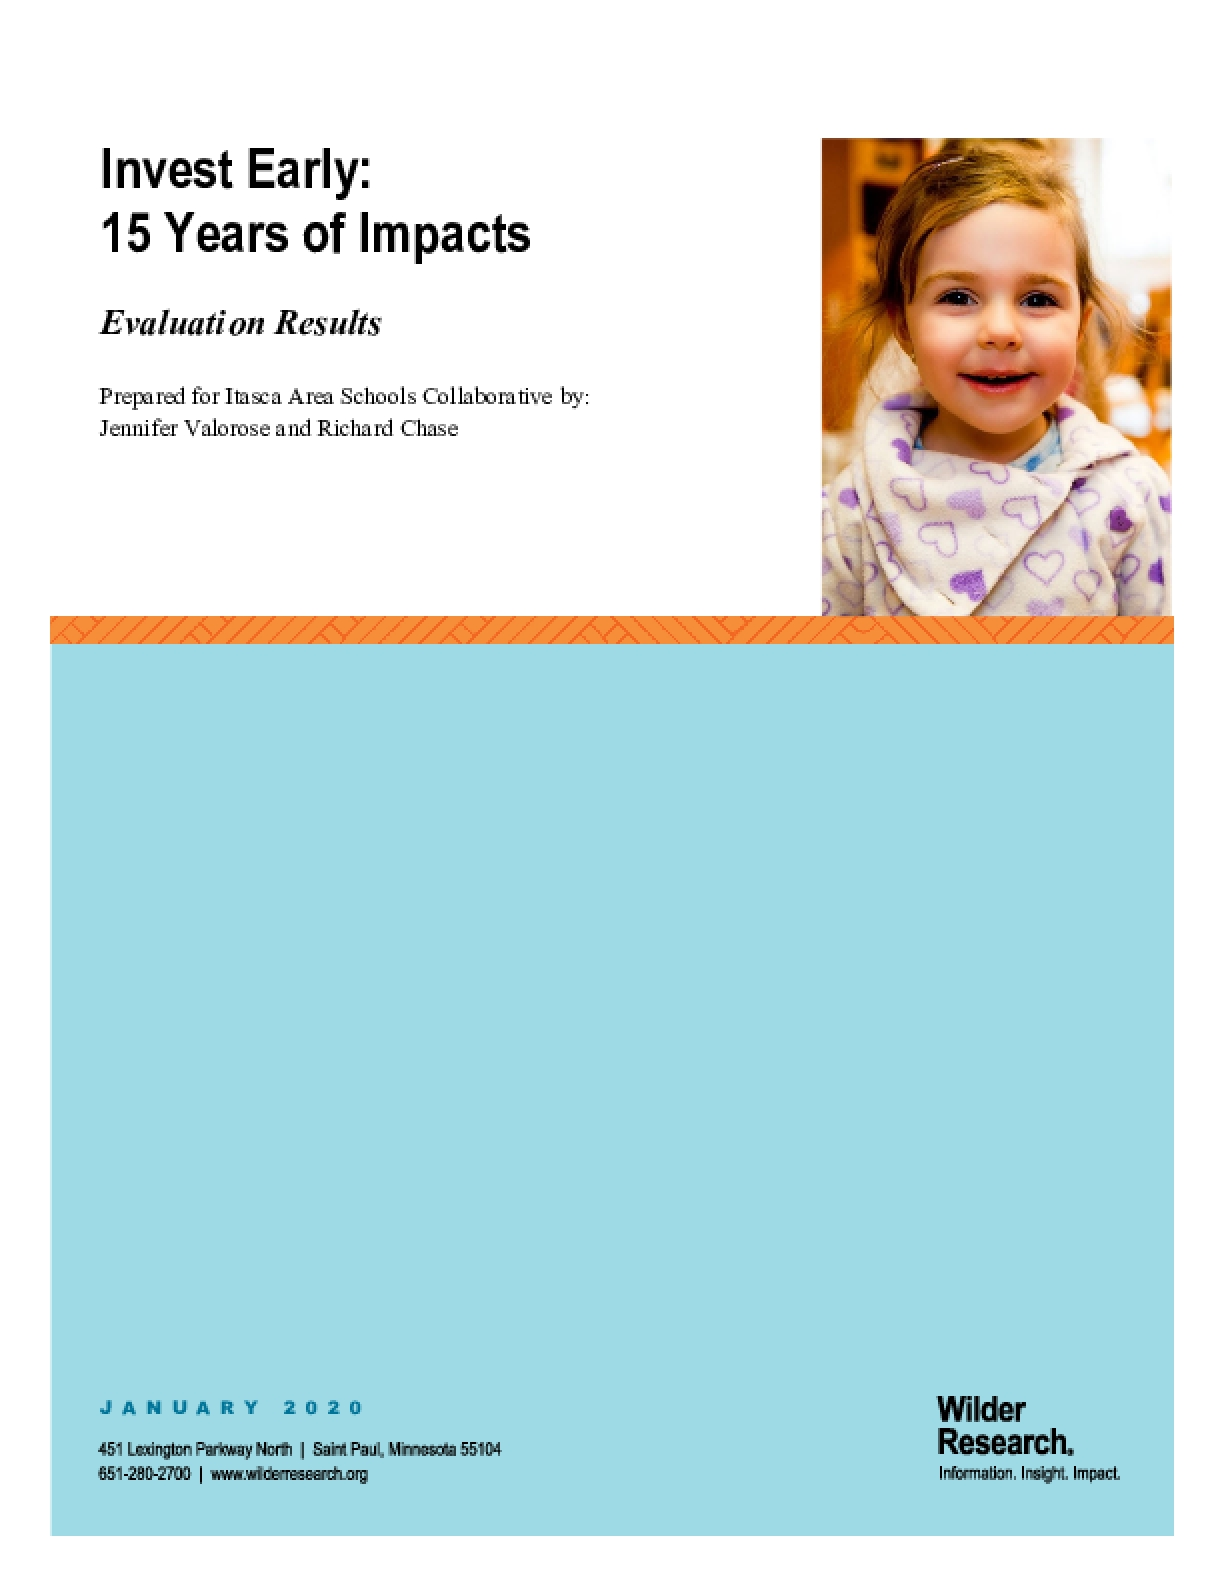 Invest Early: 15 Years of Impacts: Evaluation Results